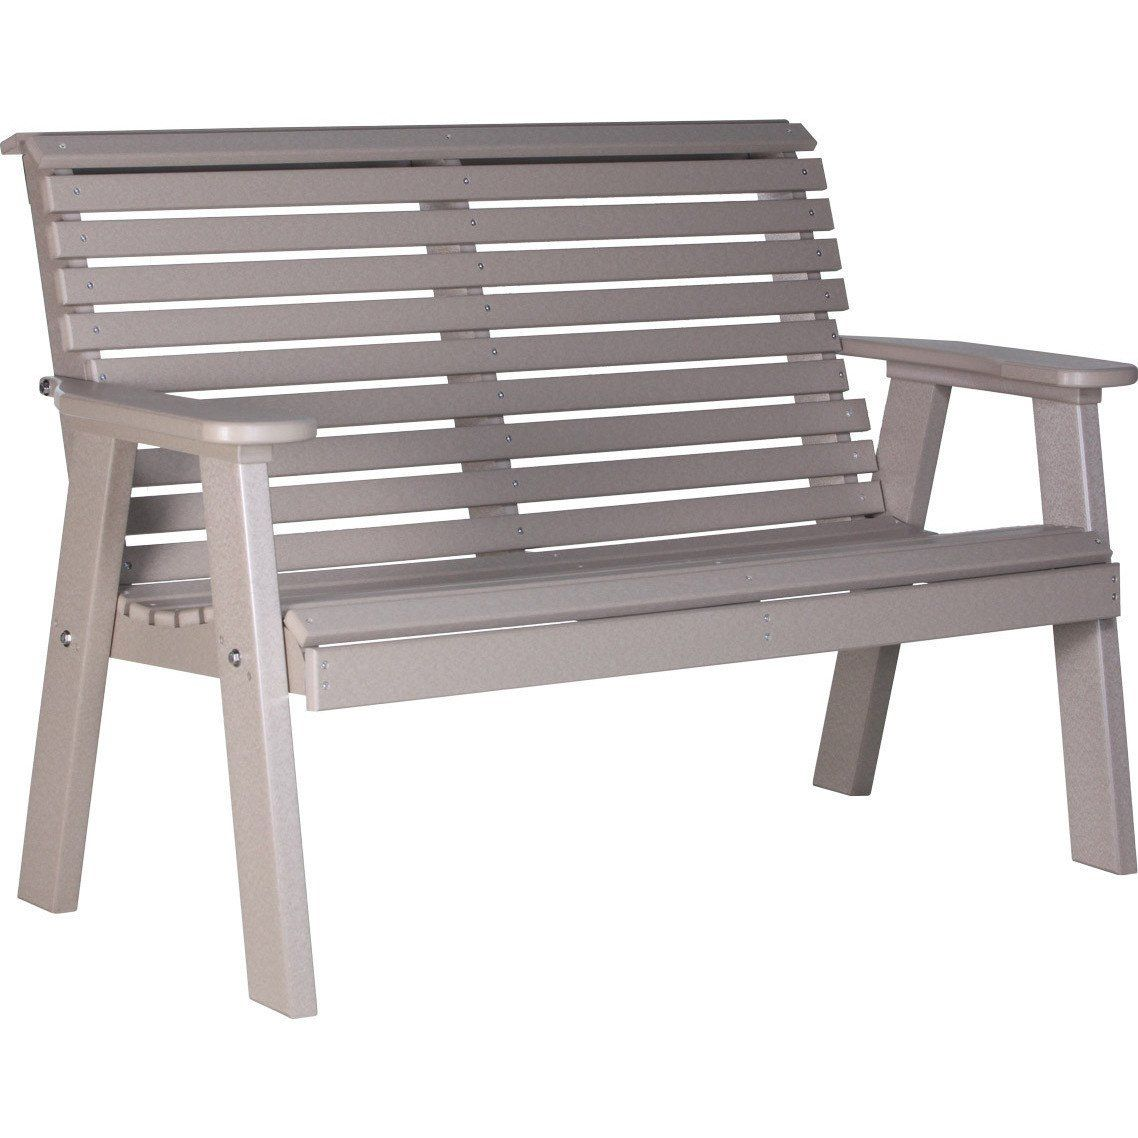 Luxcraft Rollback Recycled Plastic 4ft Bench Outdoor Wood Furniture Recycled Plastic